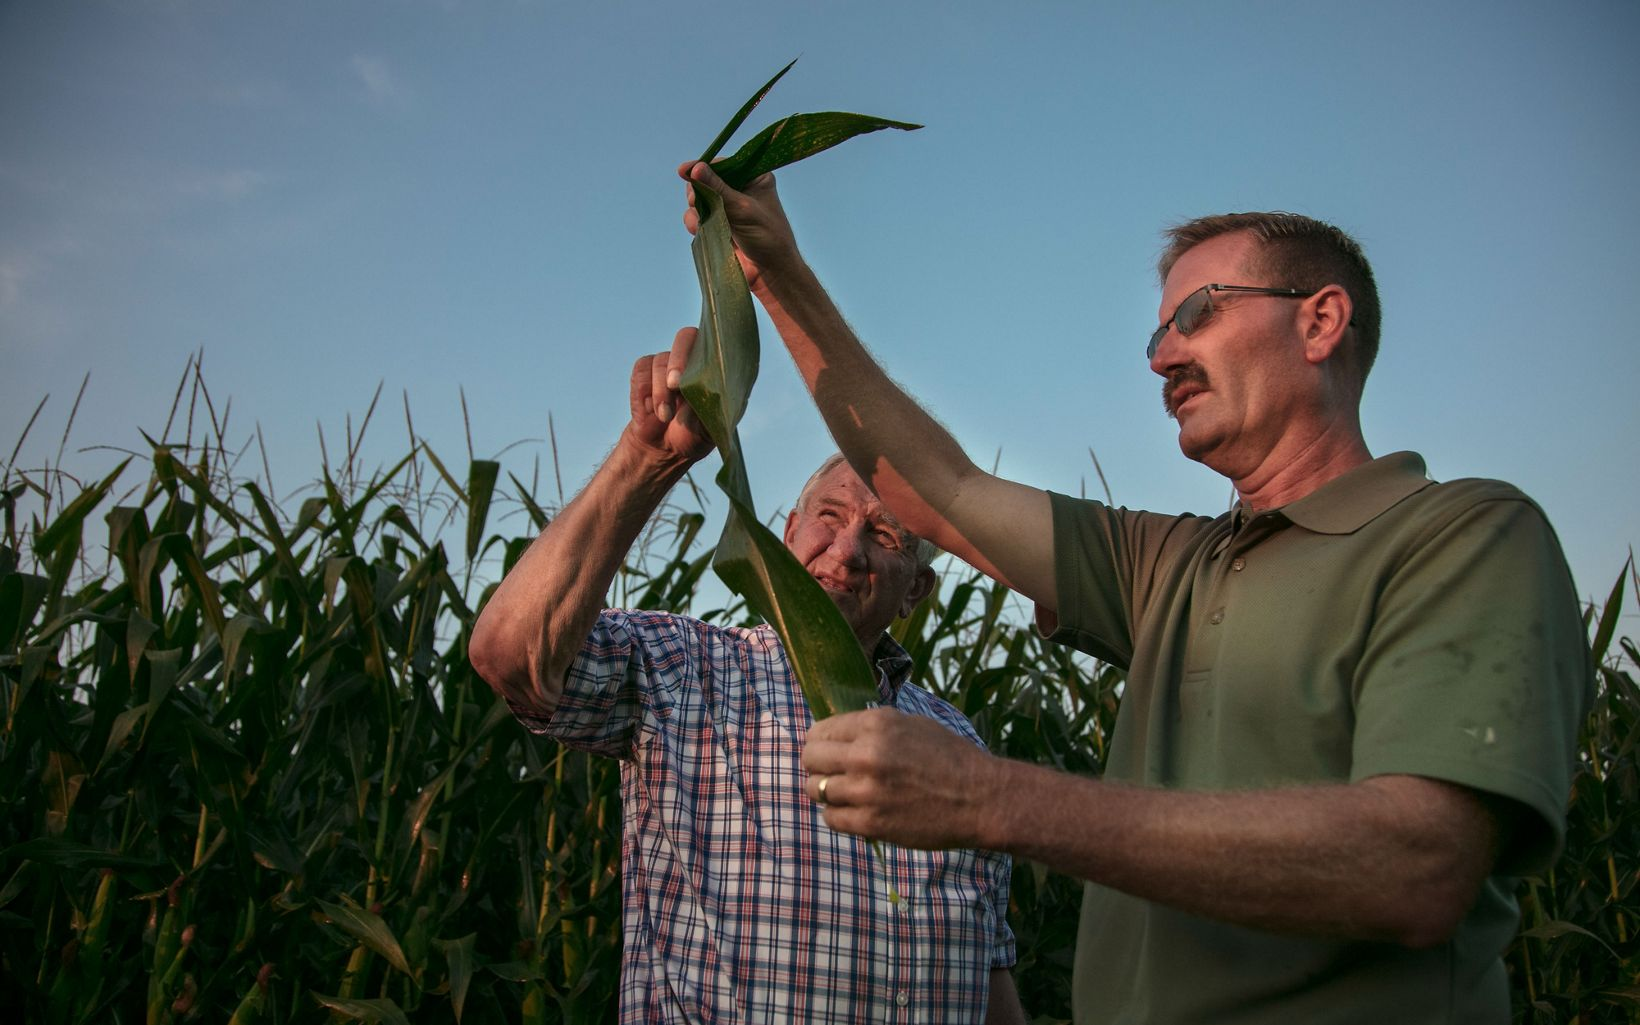 Farmers David Myerholtz (right) and his father Lowell Myerholtz (left) inspect the leaves of their corn plants for insects, parasites and disease at the Myerholtz Family Farm outside of Gibsonburg, Ohio. August 03, 2017. David Myerholtz is an active member of TNC's 4R's Nutrient Stewardship Program where farmers follow a  precision nutrient management plan that allows them to apply the minimum about of fertilizer (nutrients) so that runoff from their farms is minimized and does not contribute to algal blooms in Lake Erie. TNC's Great Lakes Program.